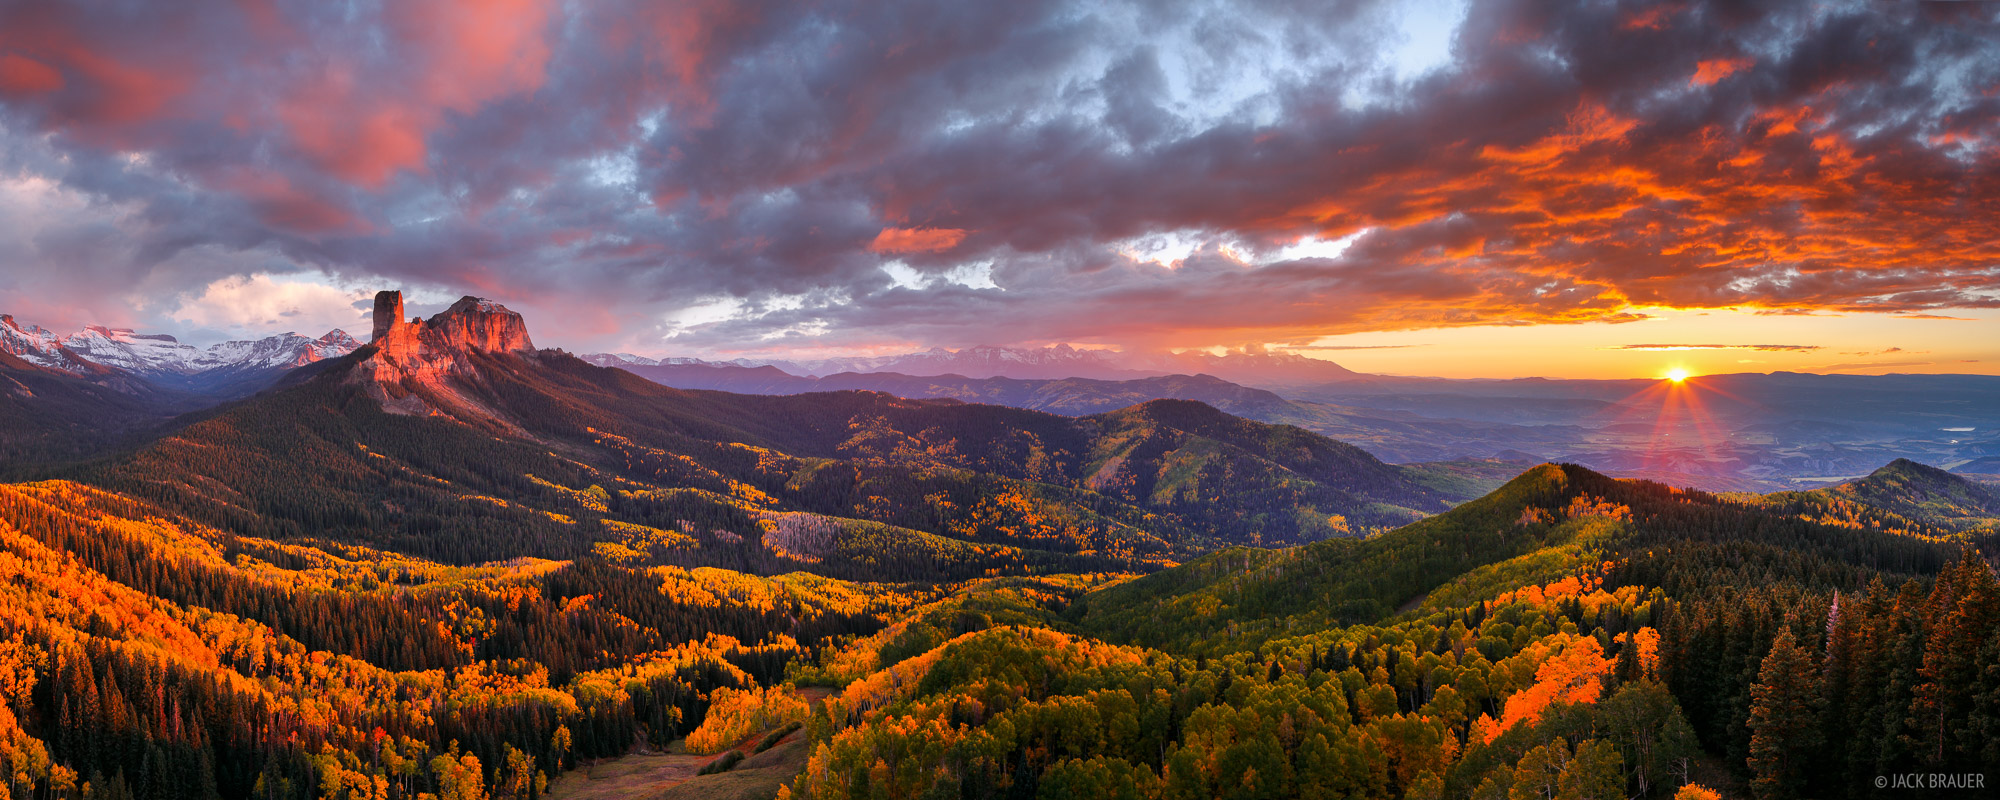 Cimarrons, Ridgway, Pleasant Valley, Sneffels Range, Chimney Rock, Courthouse Mountain, San Juan Mountains, Colorado, sunset, panorama